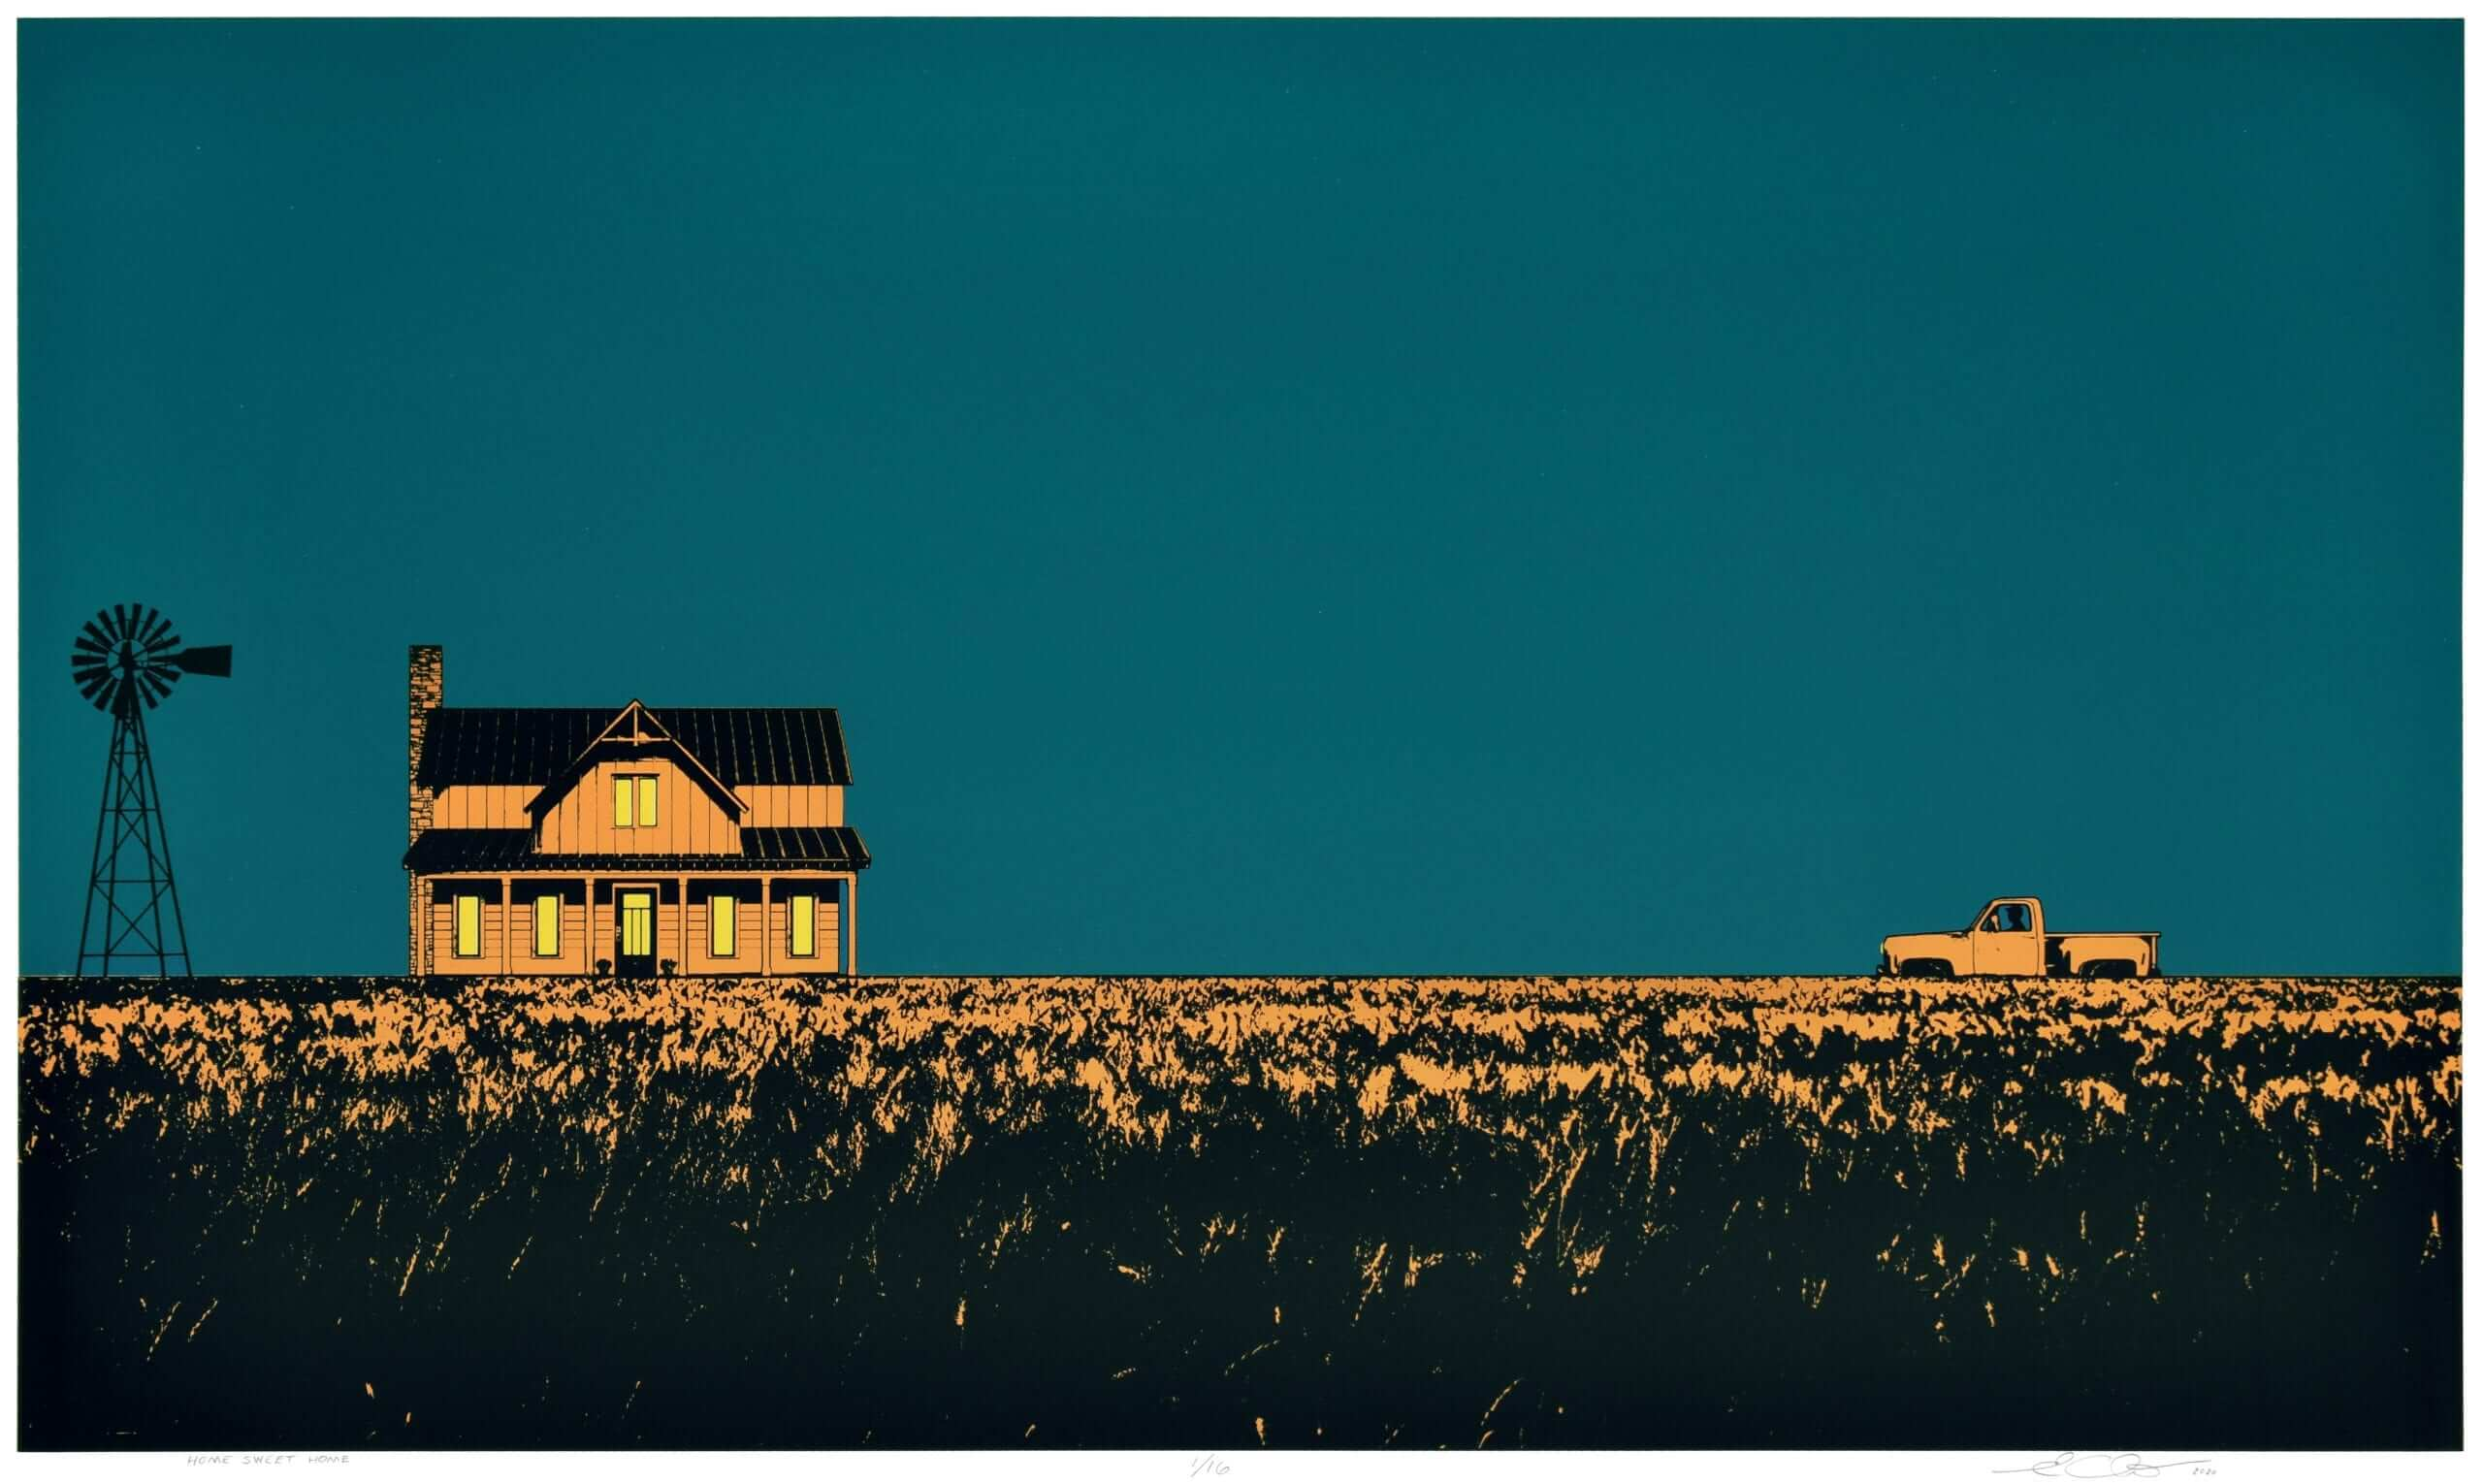 Home Sweet Home - Eric Ouimet Image 1